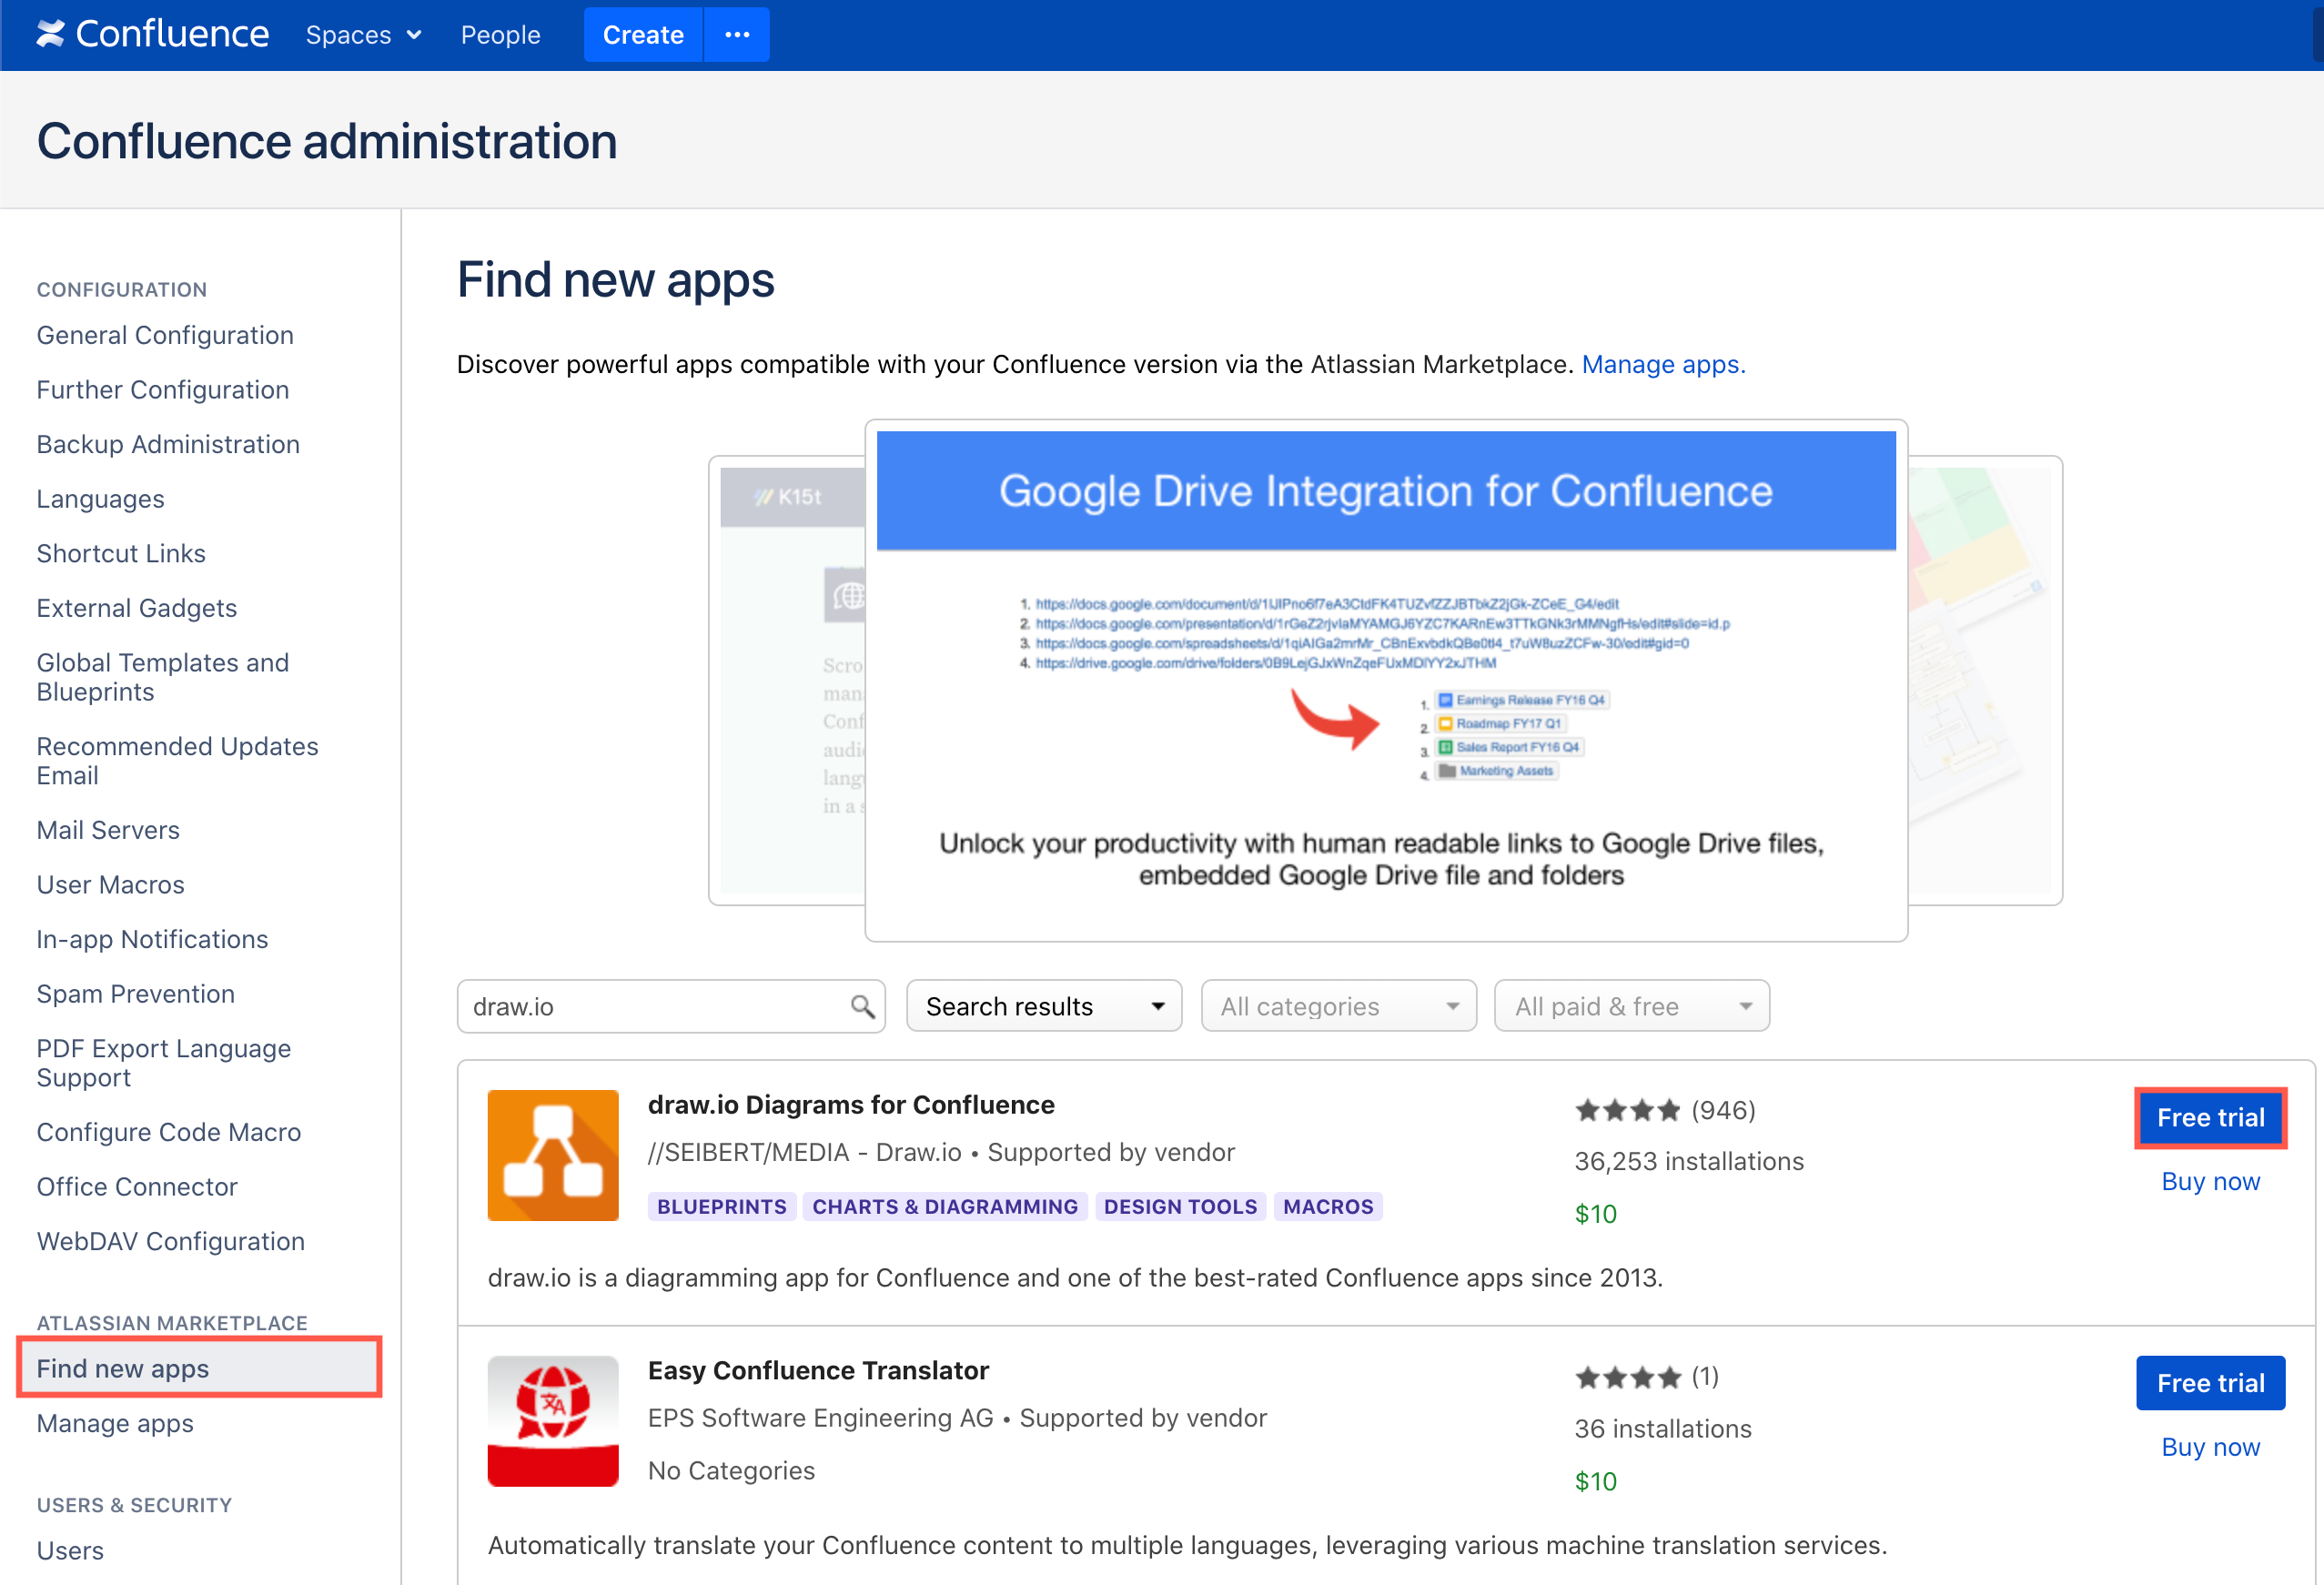 Get a trial draw.io license in Confluence Server